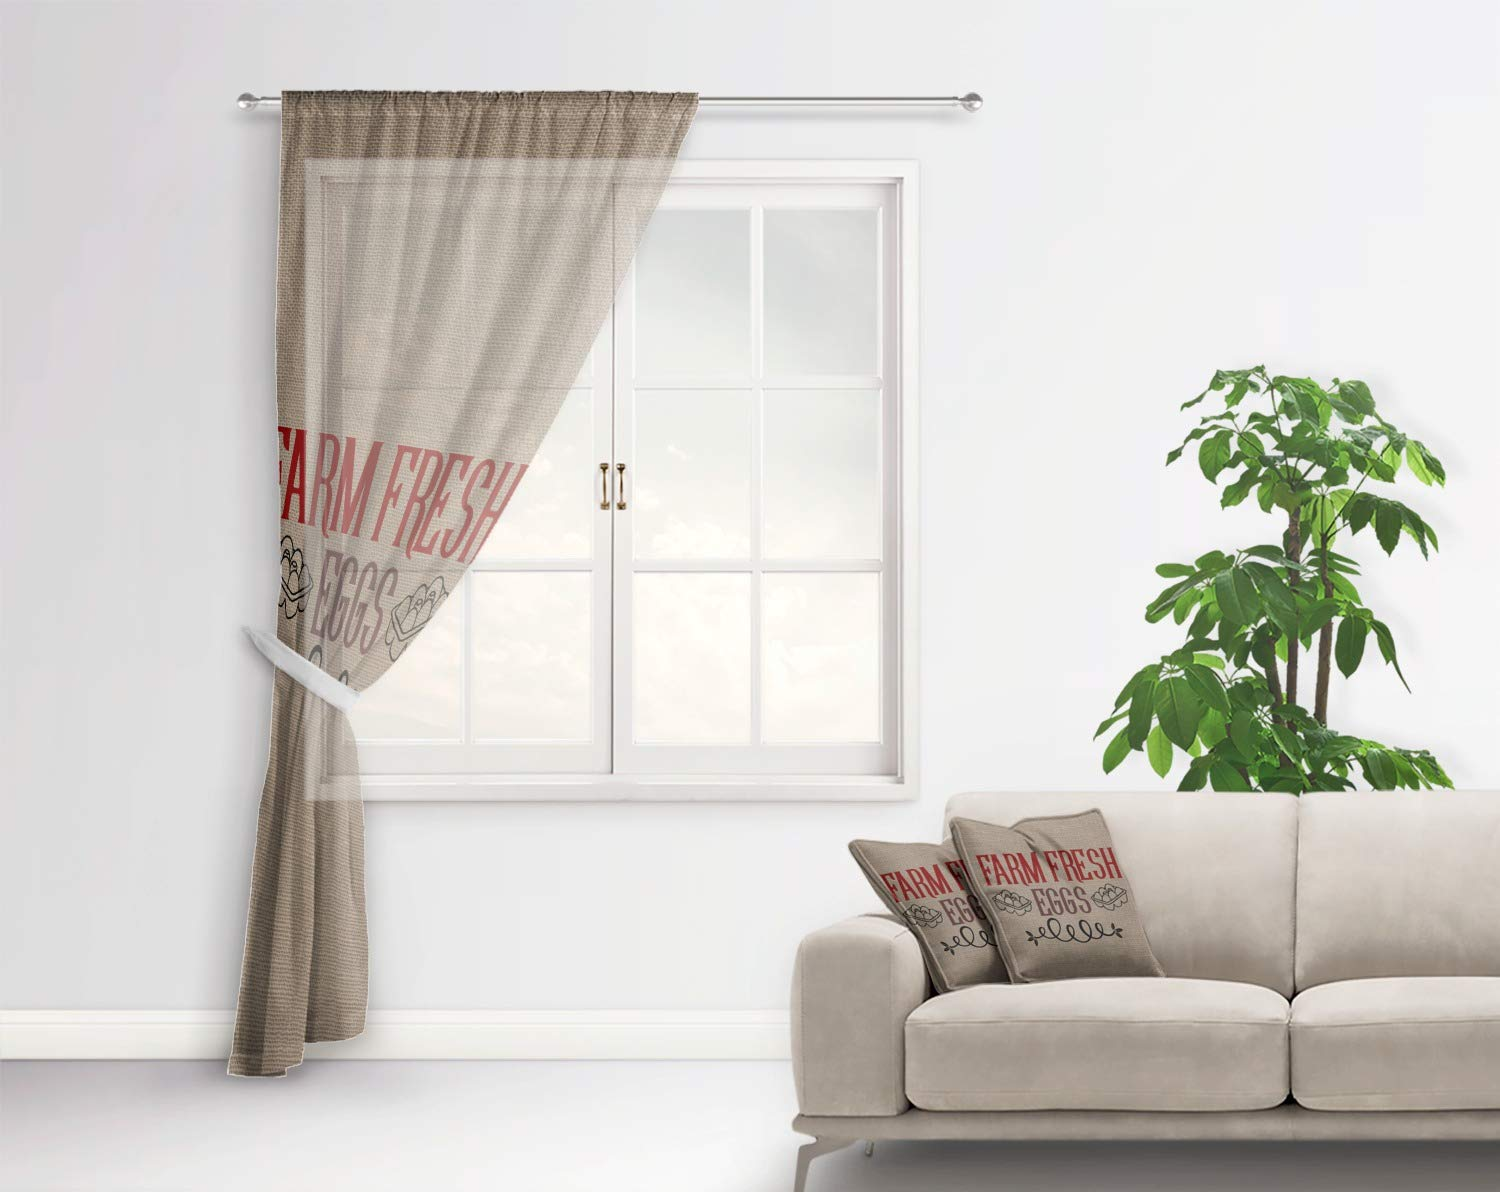 Amazon.com: RNK Shops Farm Quotes Sheer Curtain - 50